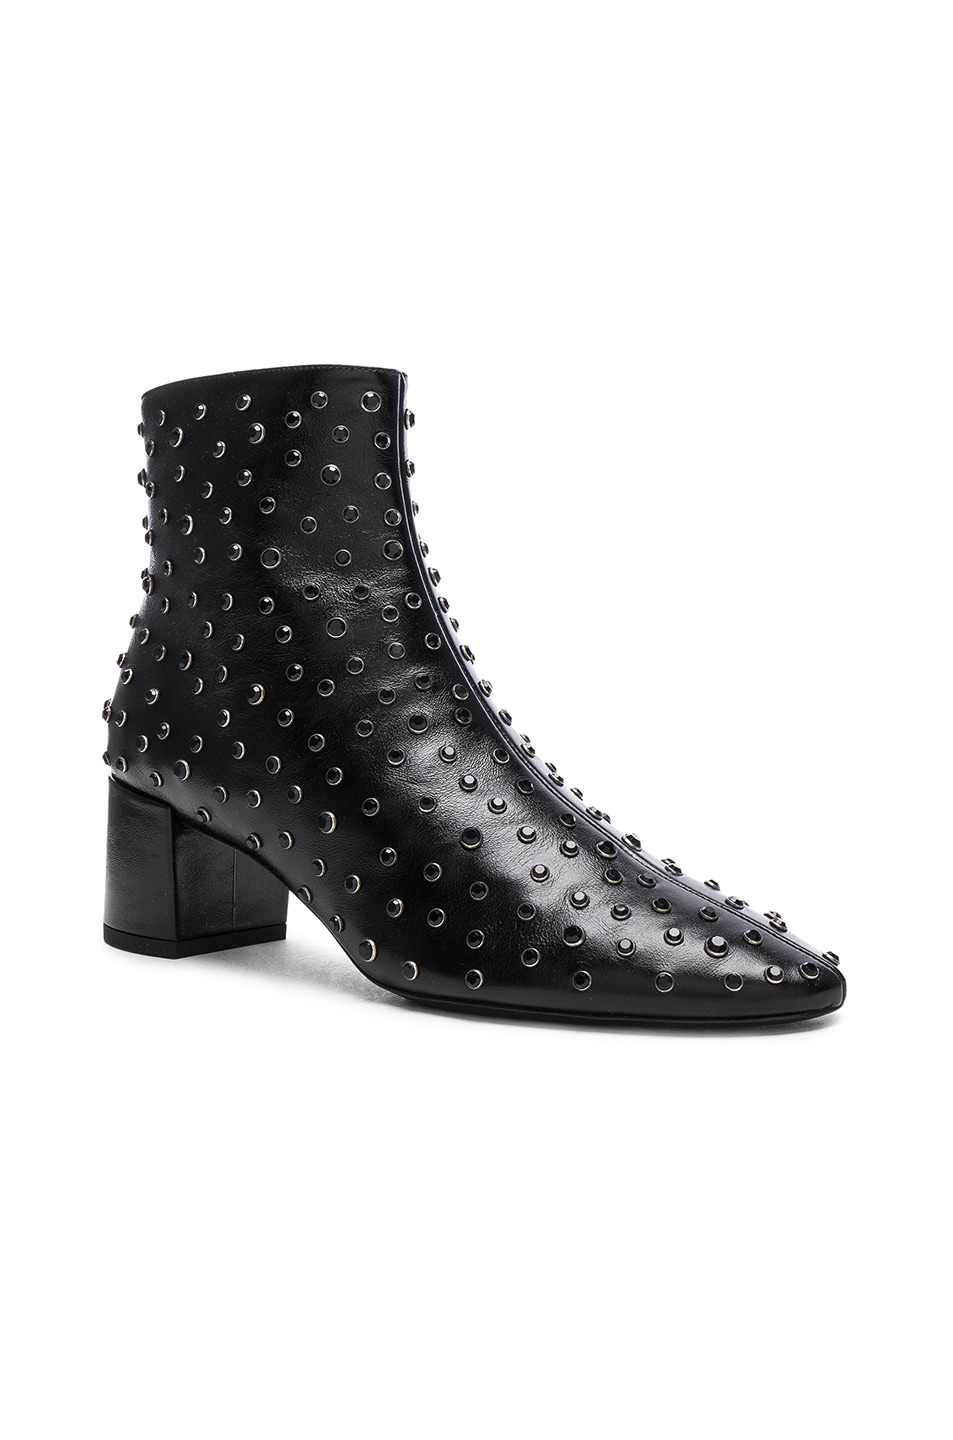 Image 2 of Saint Laurent Loulou Crystal Studded Leather Ankle Boots in Black